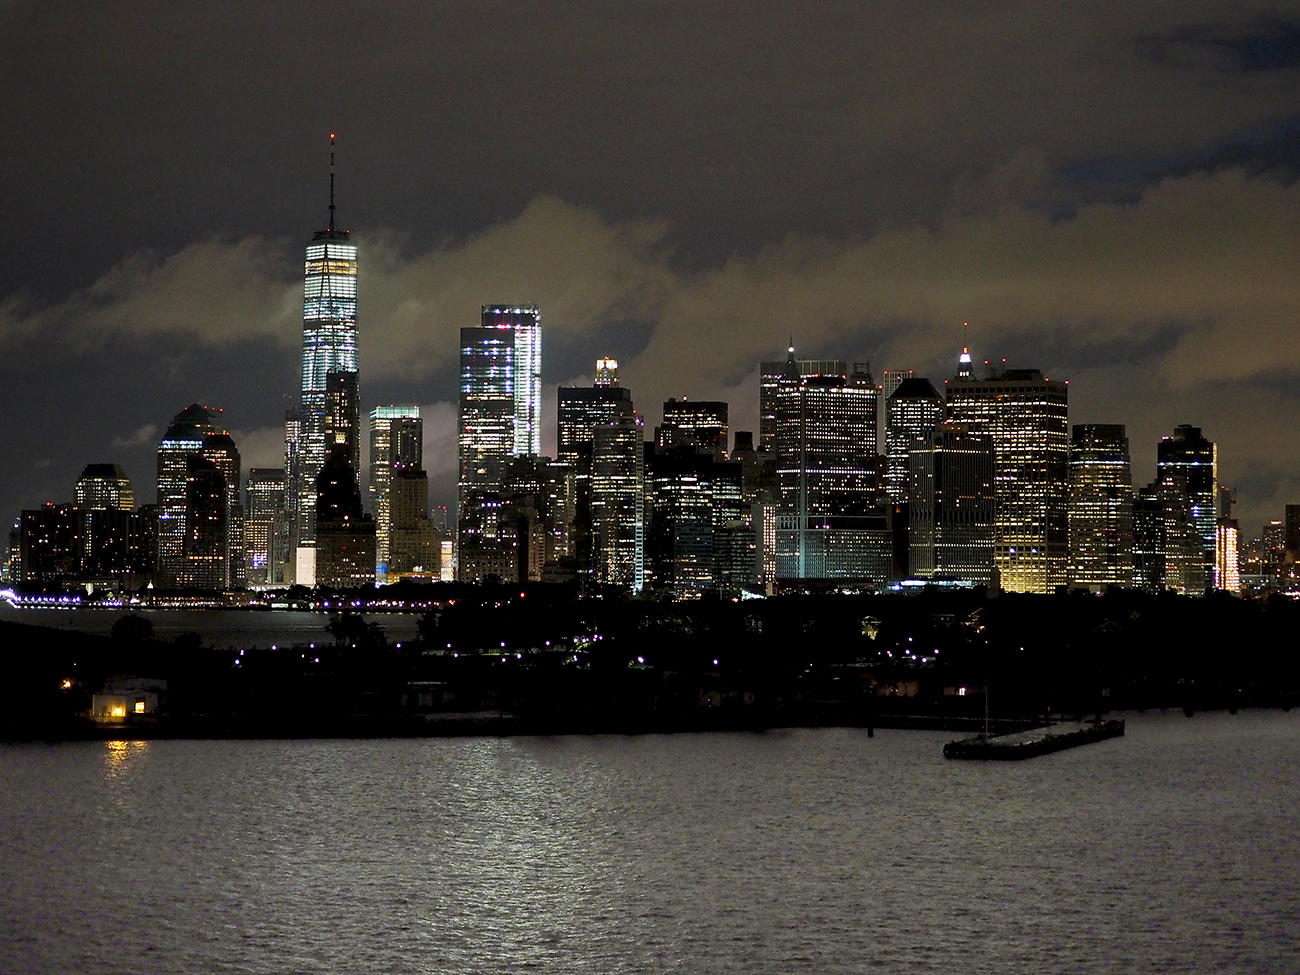 Queen Mary 2 arrival into NYC